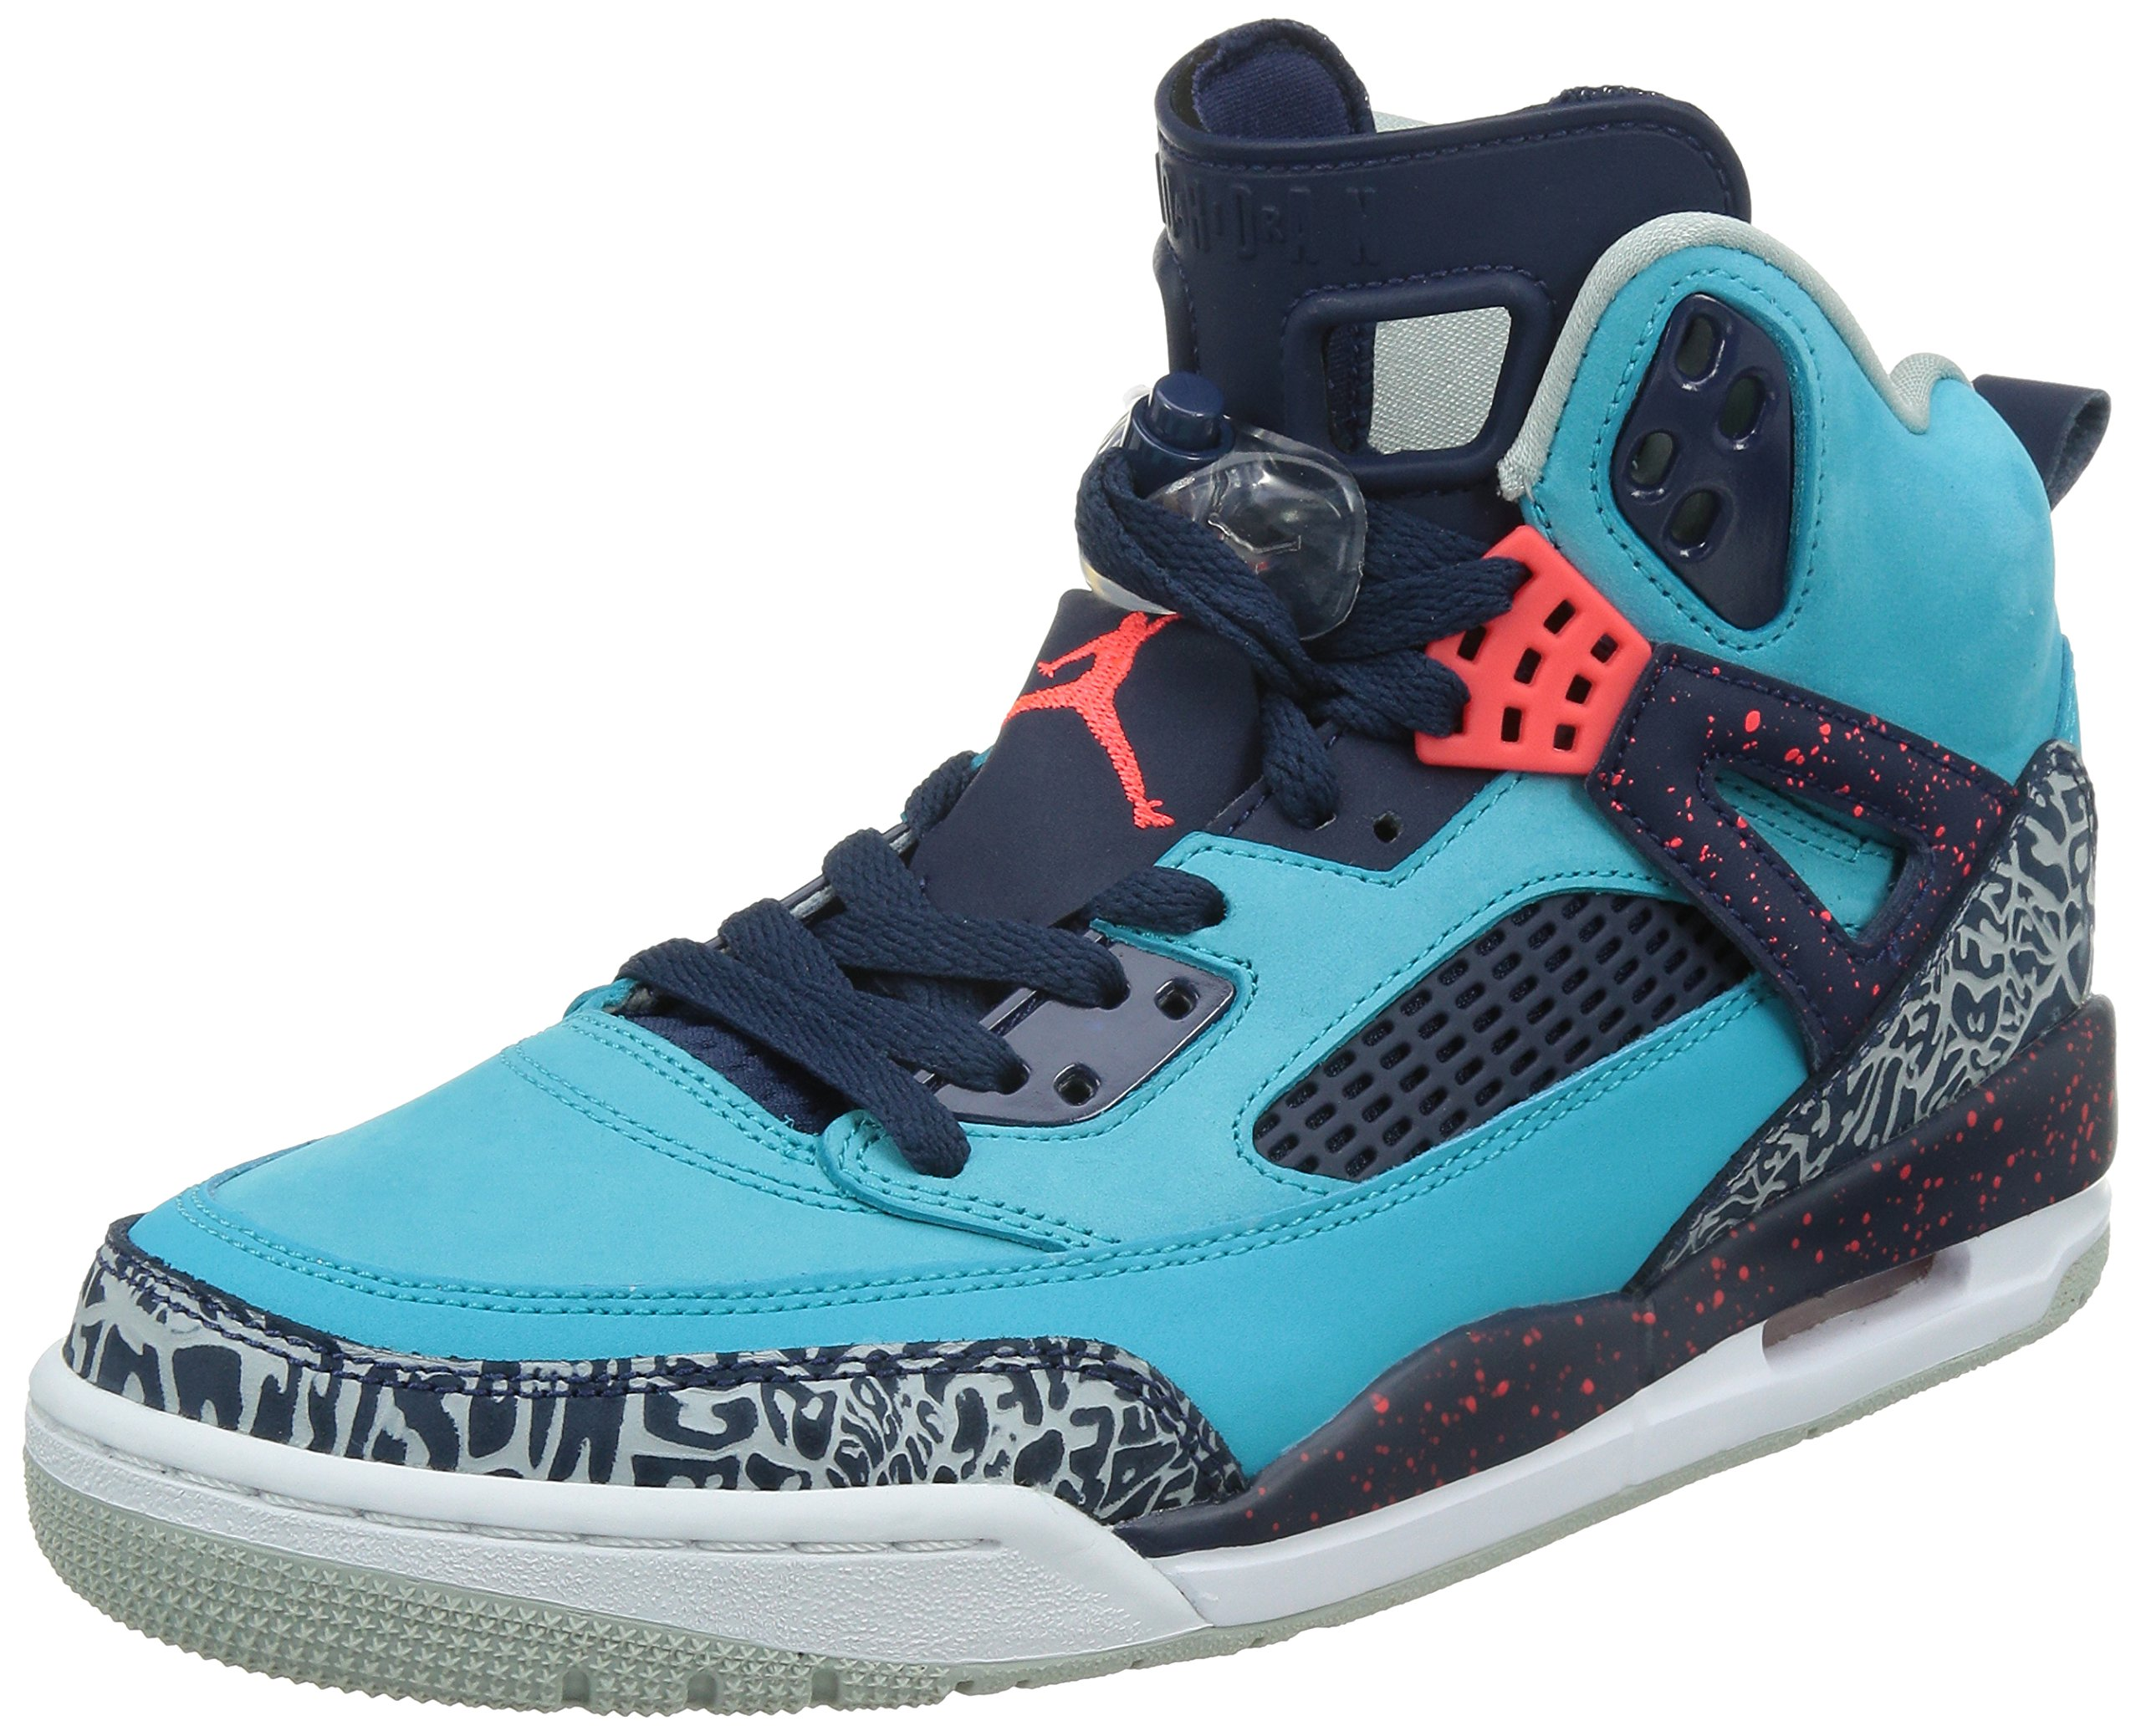 Jordan Spizike Men Lifestyle Casual Sneakers New Turquoise Blue